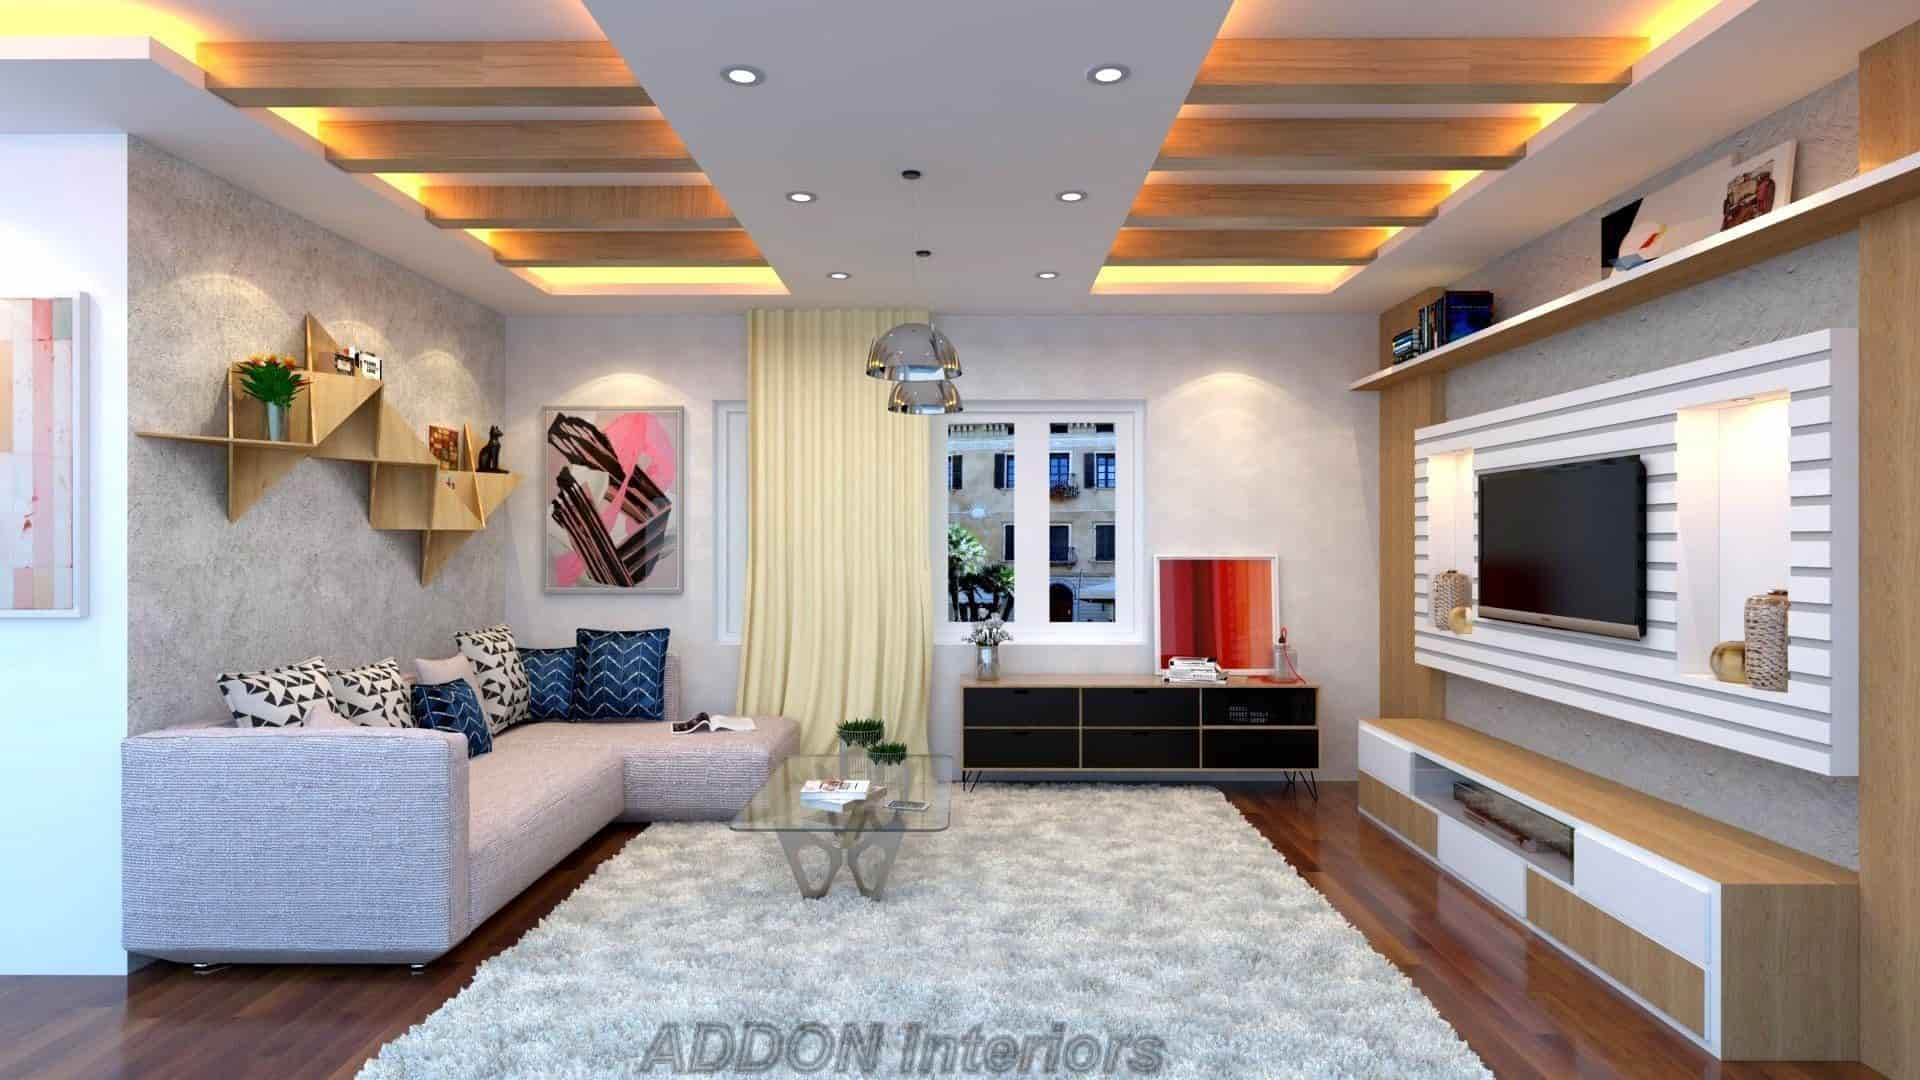 Addon Interiors Btm Layout 1st Stage Interior Design Bangalore